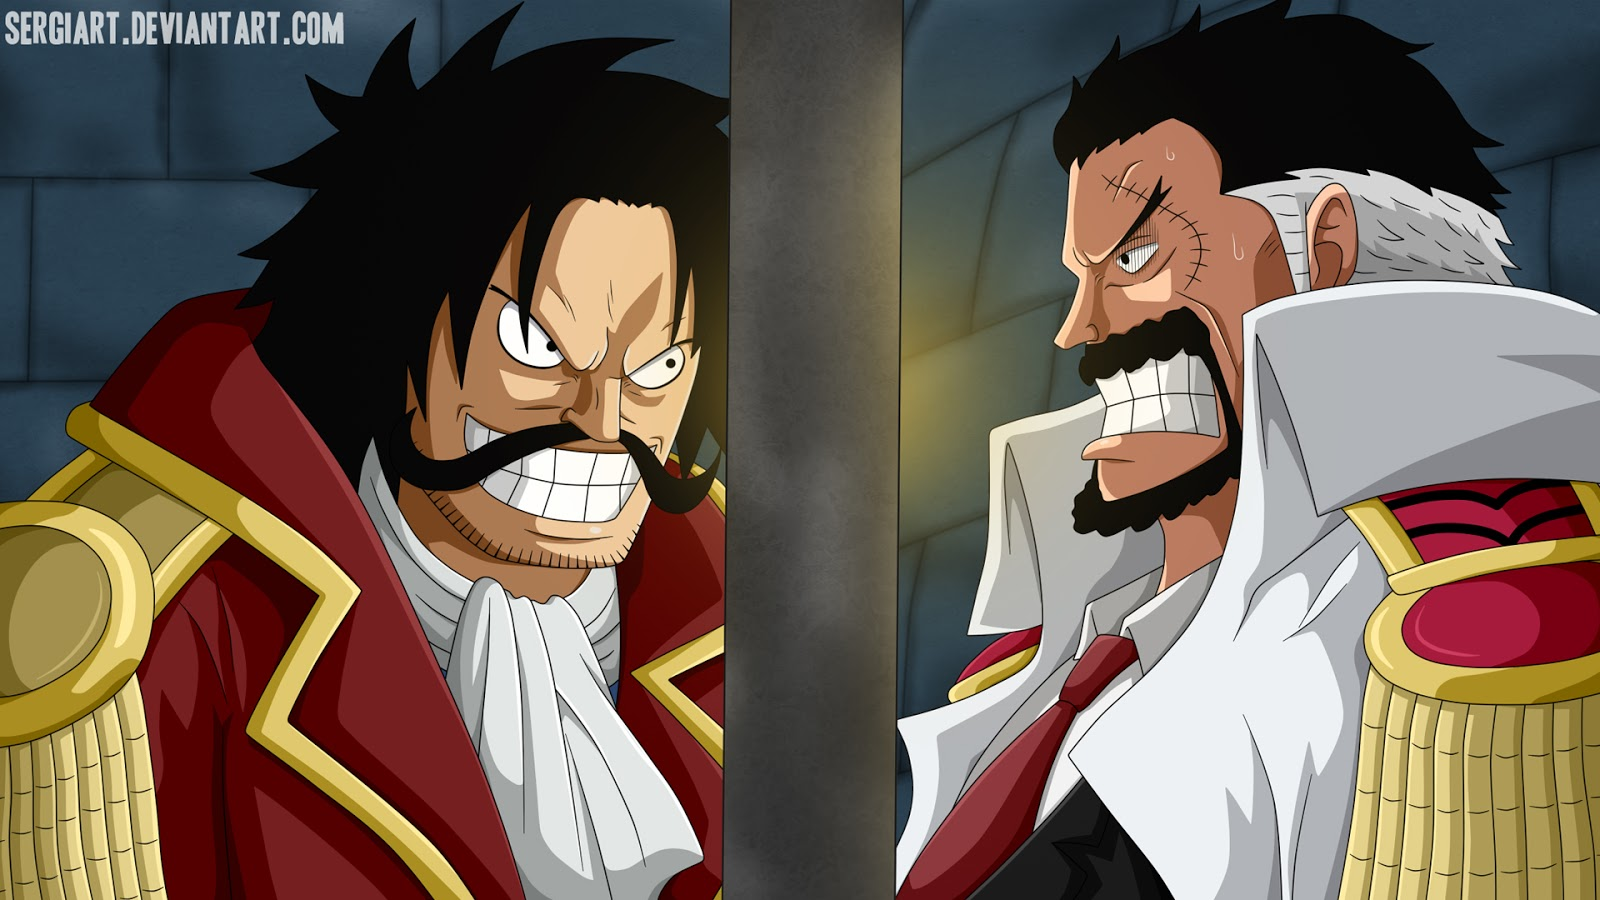 gol d roger rencontre rayleigh